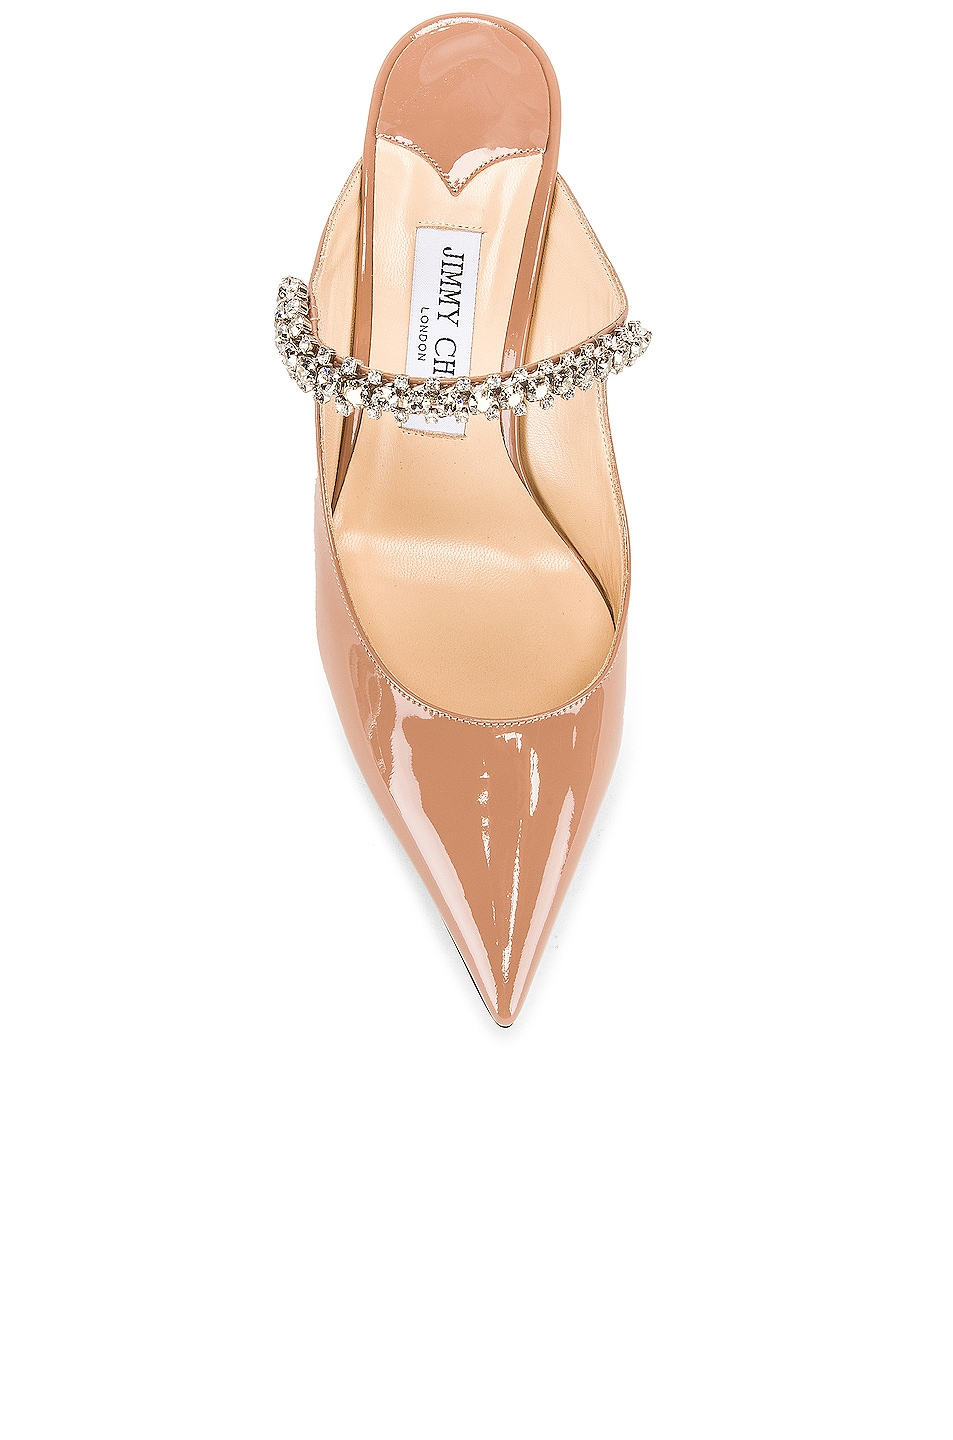 Image 4 of Jimmy Choo Bing 65 Patent Leather Heel in Ballet Pink